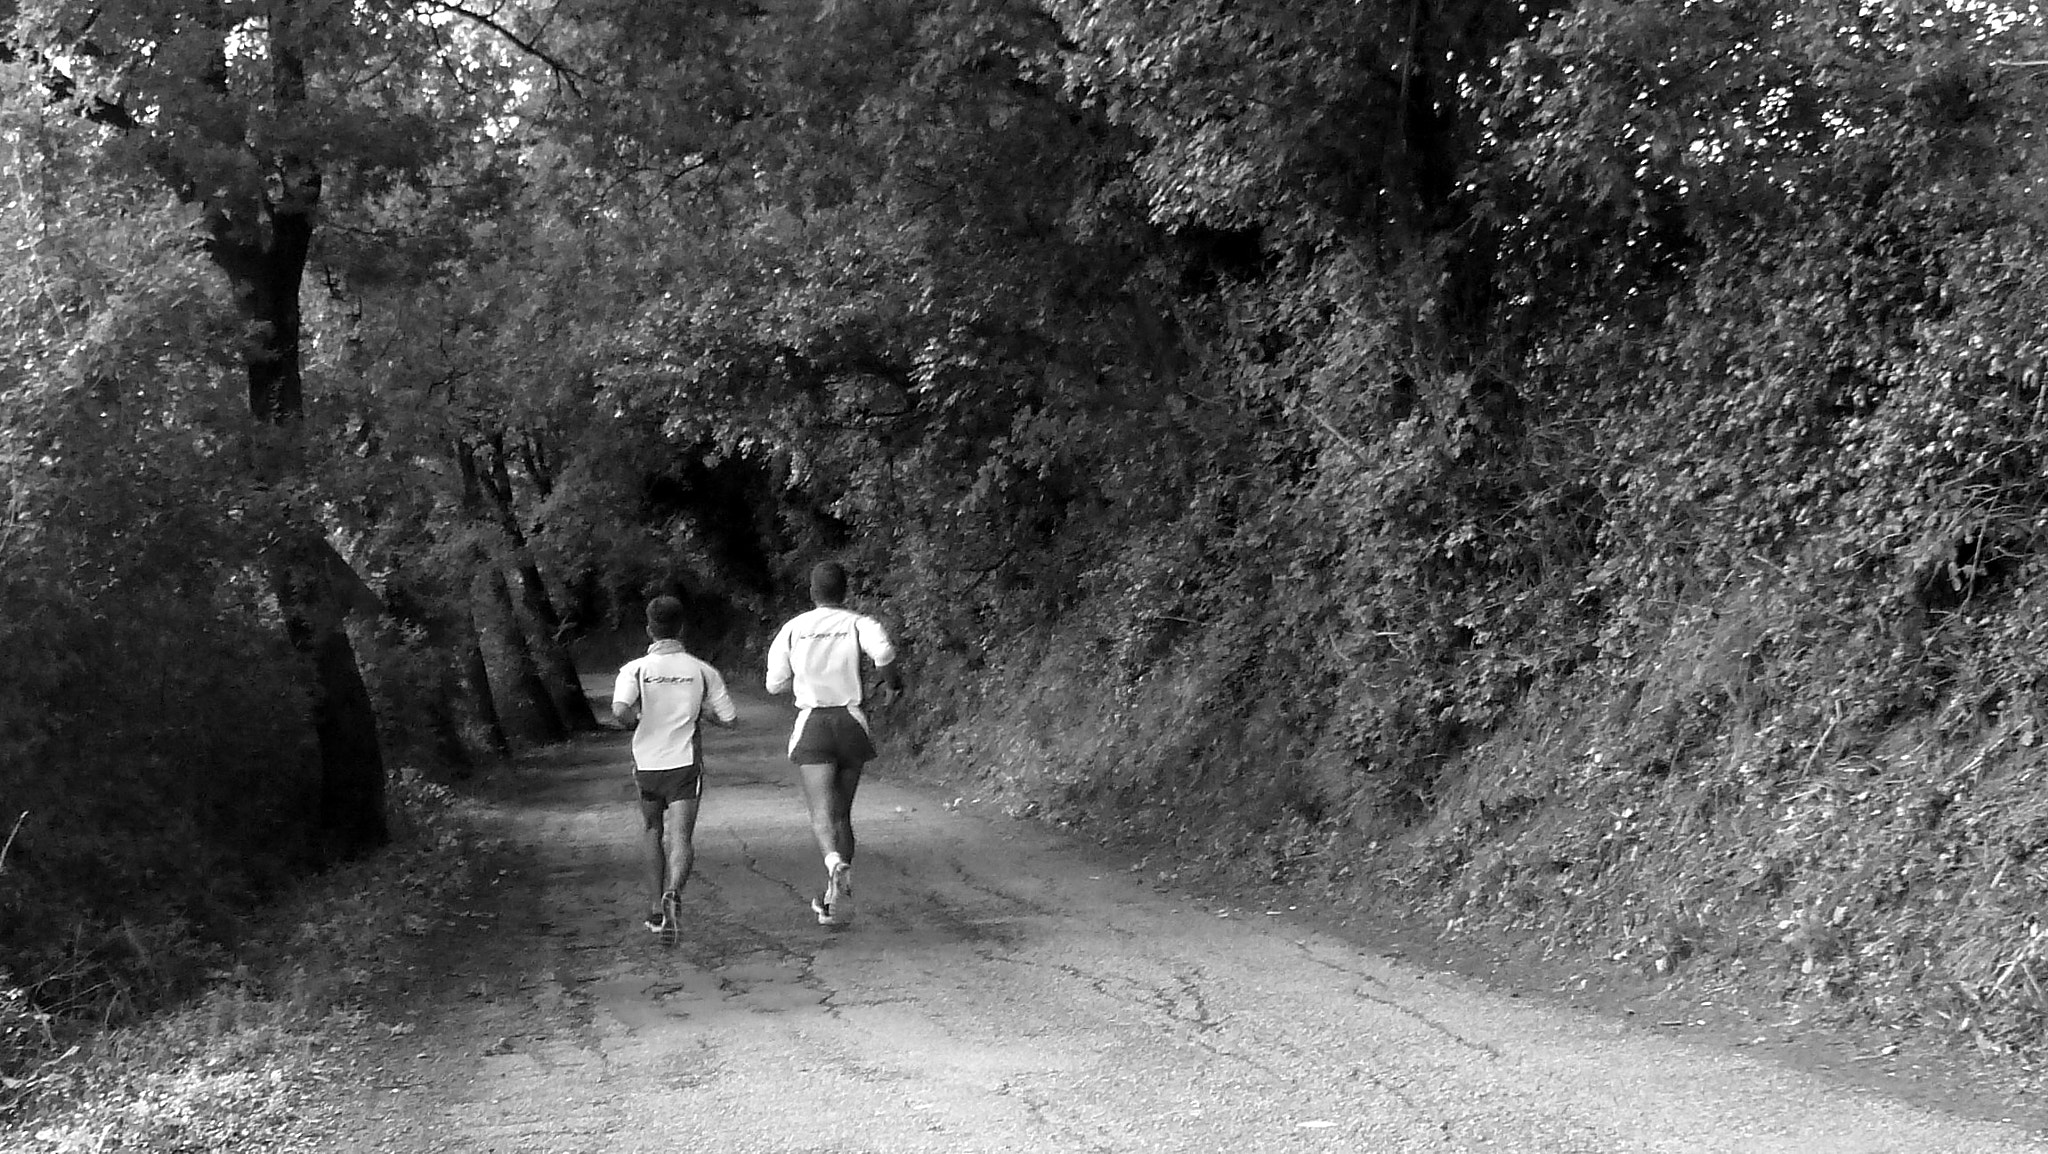 Photograph Runners by Ulderico Pontini on 500px